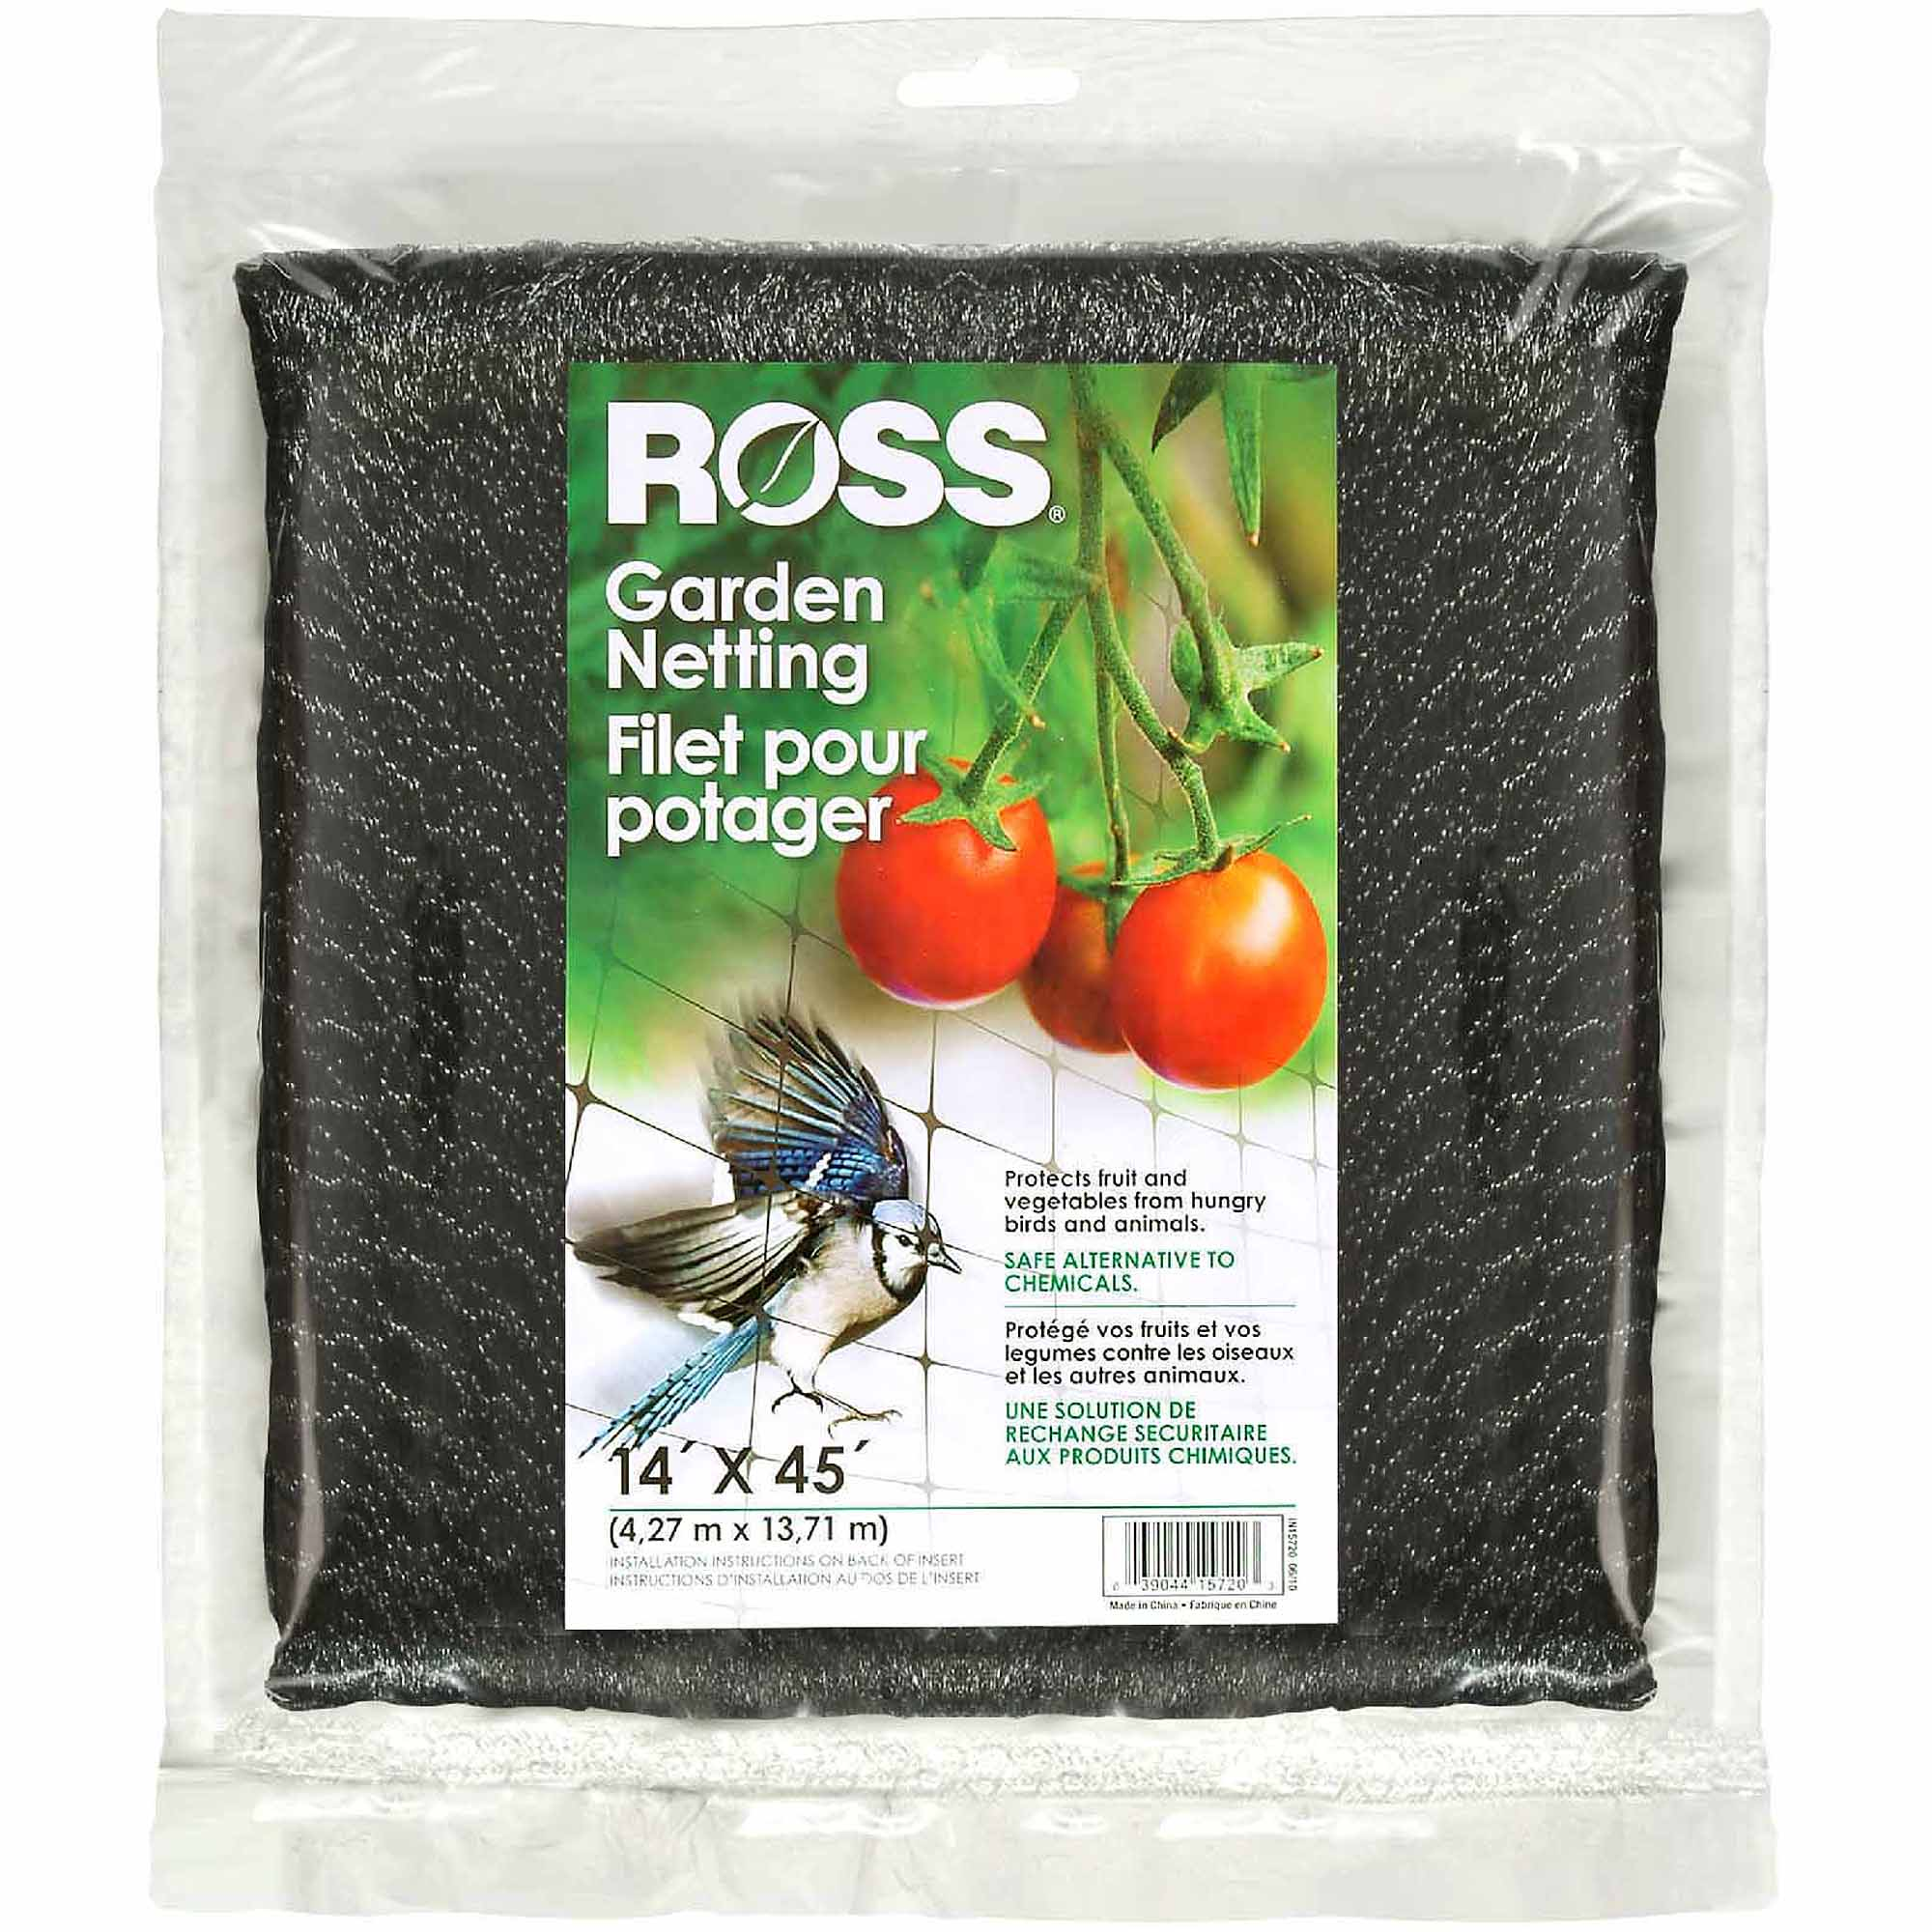 Ross Easy Gardener/Weedblock 14' x 45' Garden Netting